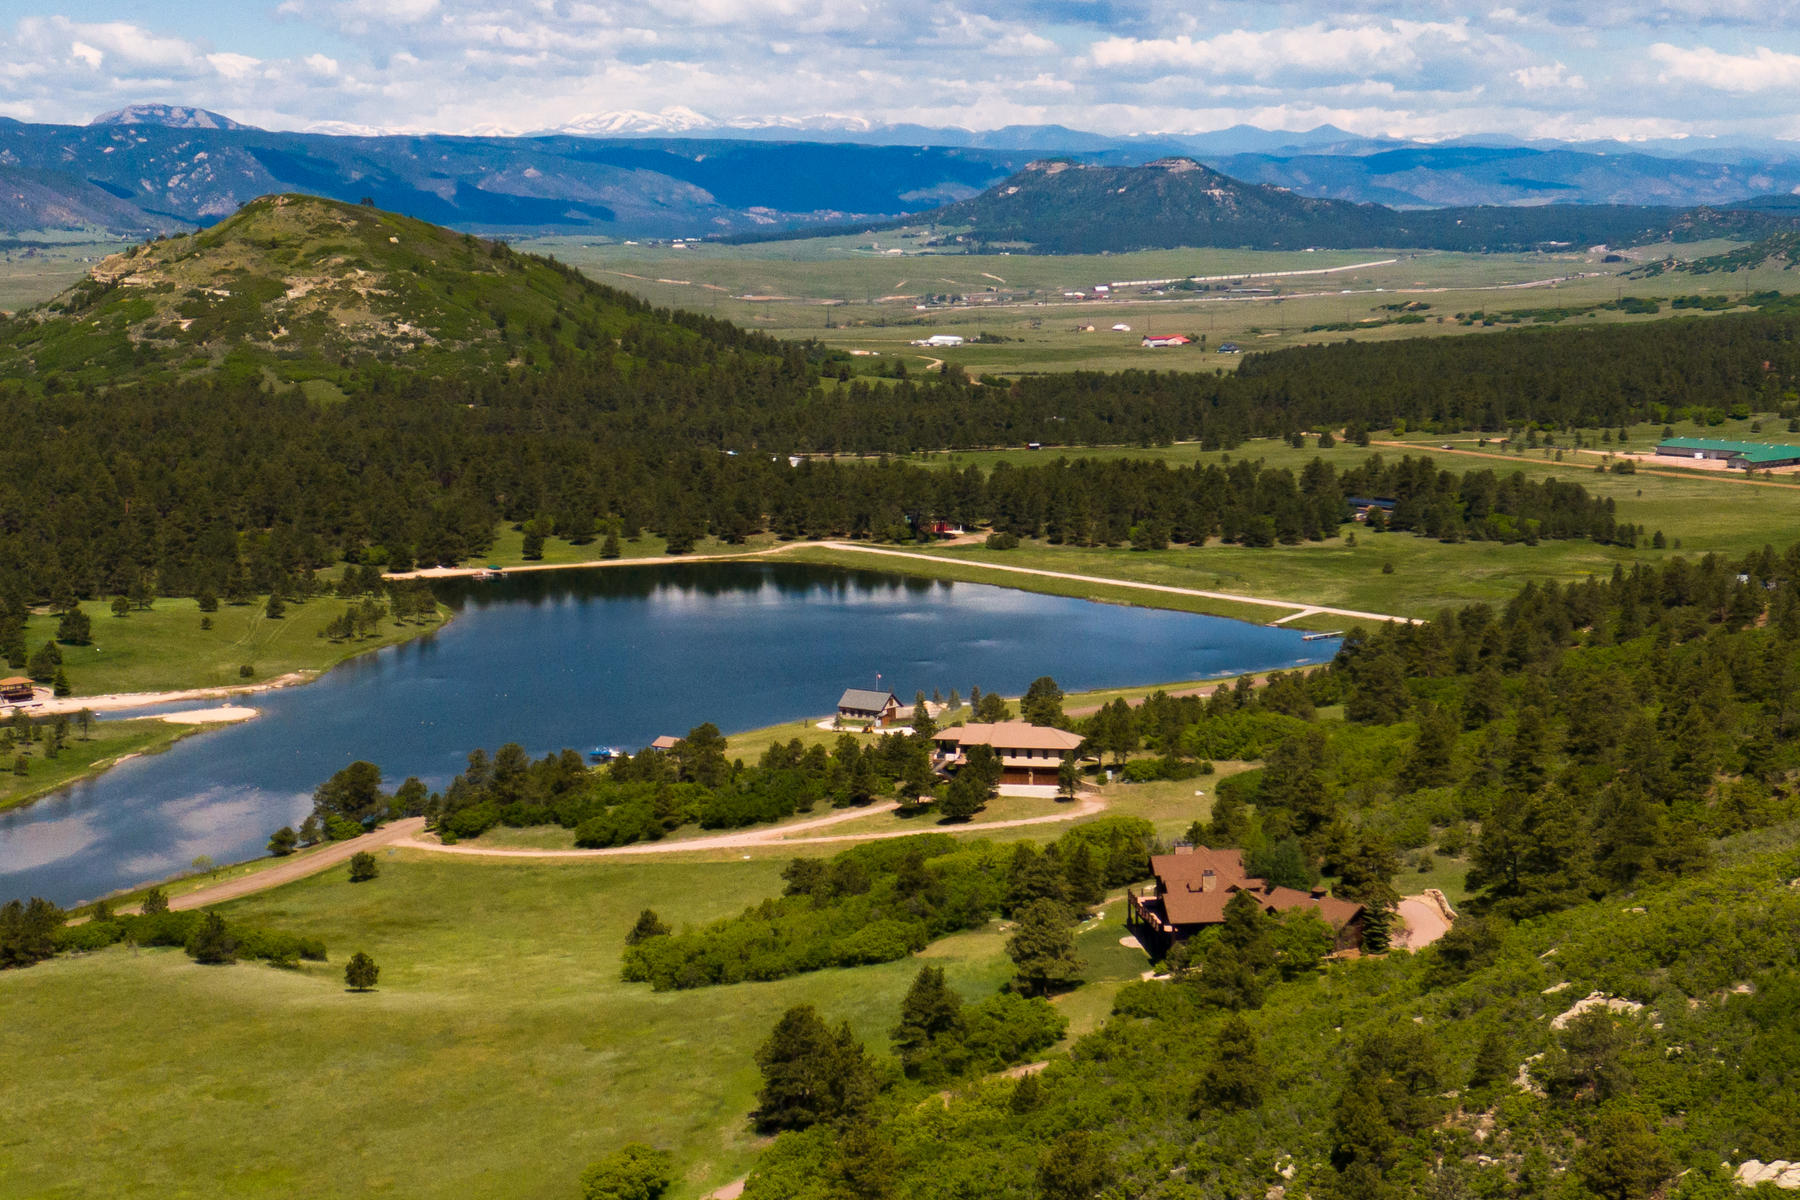 Single Family Homes for Sale at 35-Acre Estate designed for a Lake Lifestyle. 4409 Triple Eagle Trl Larkspur, Colorado 80118 United States